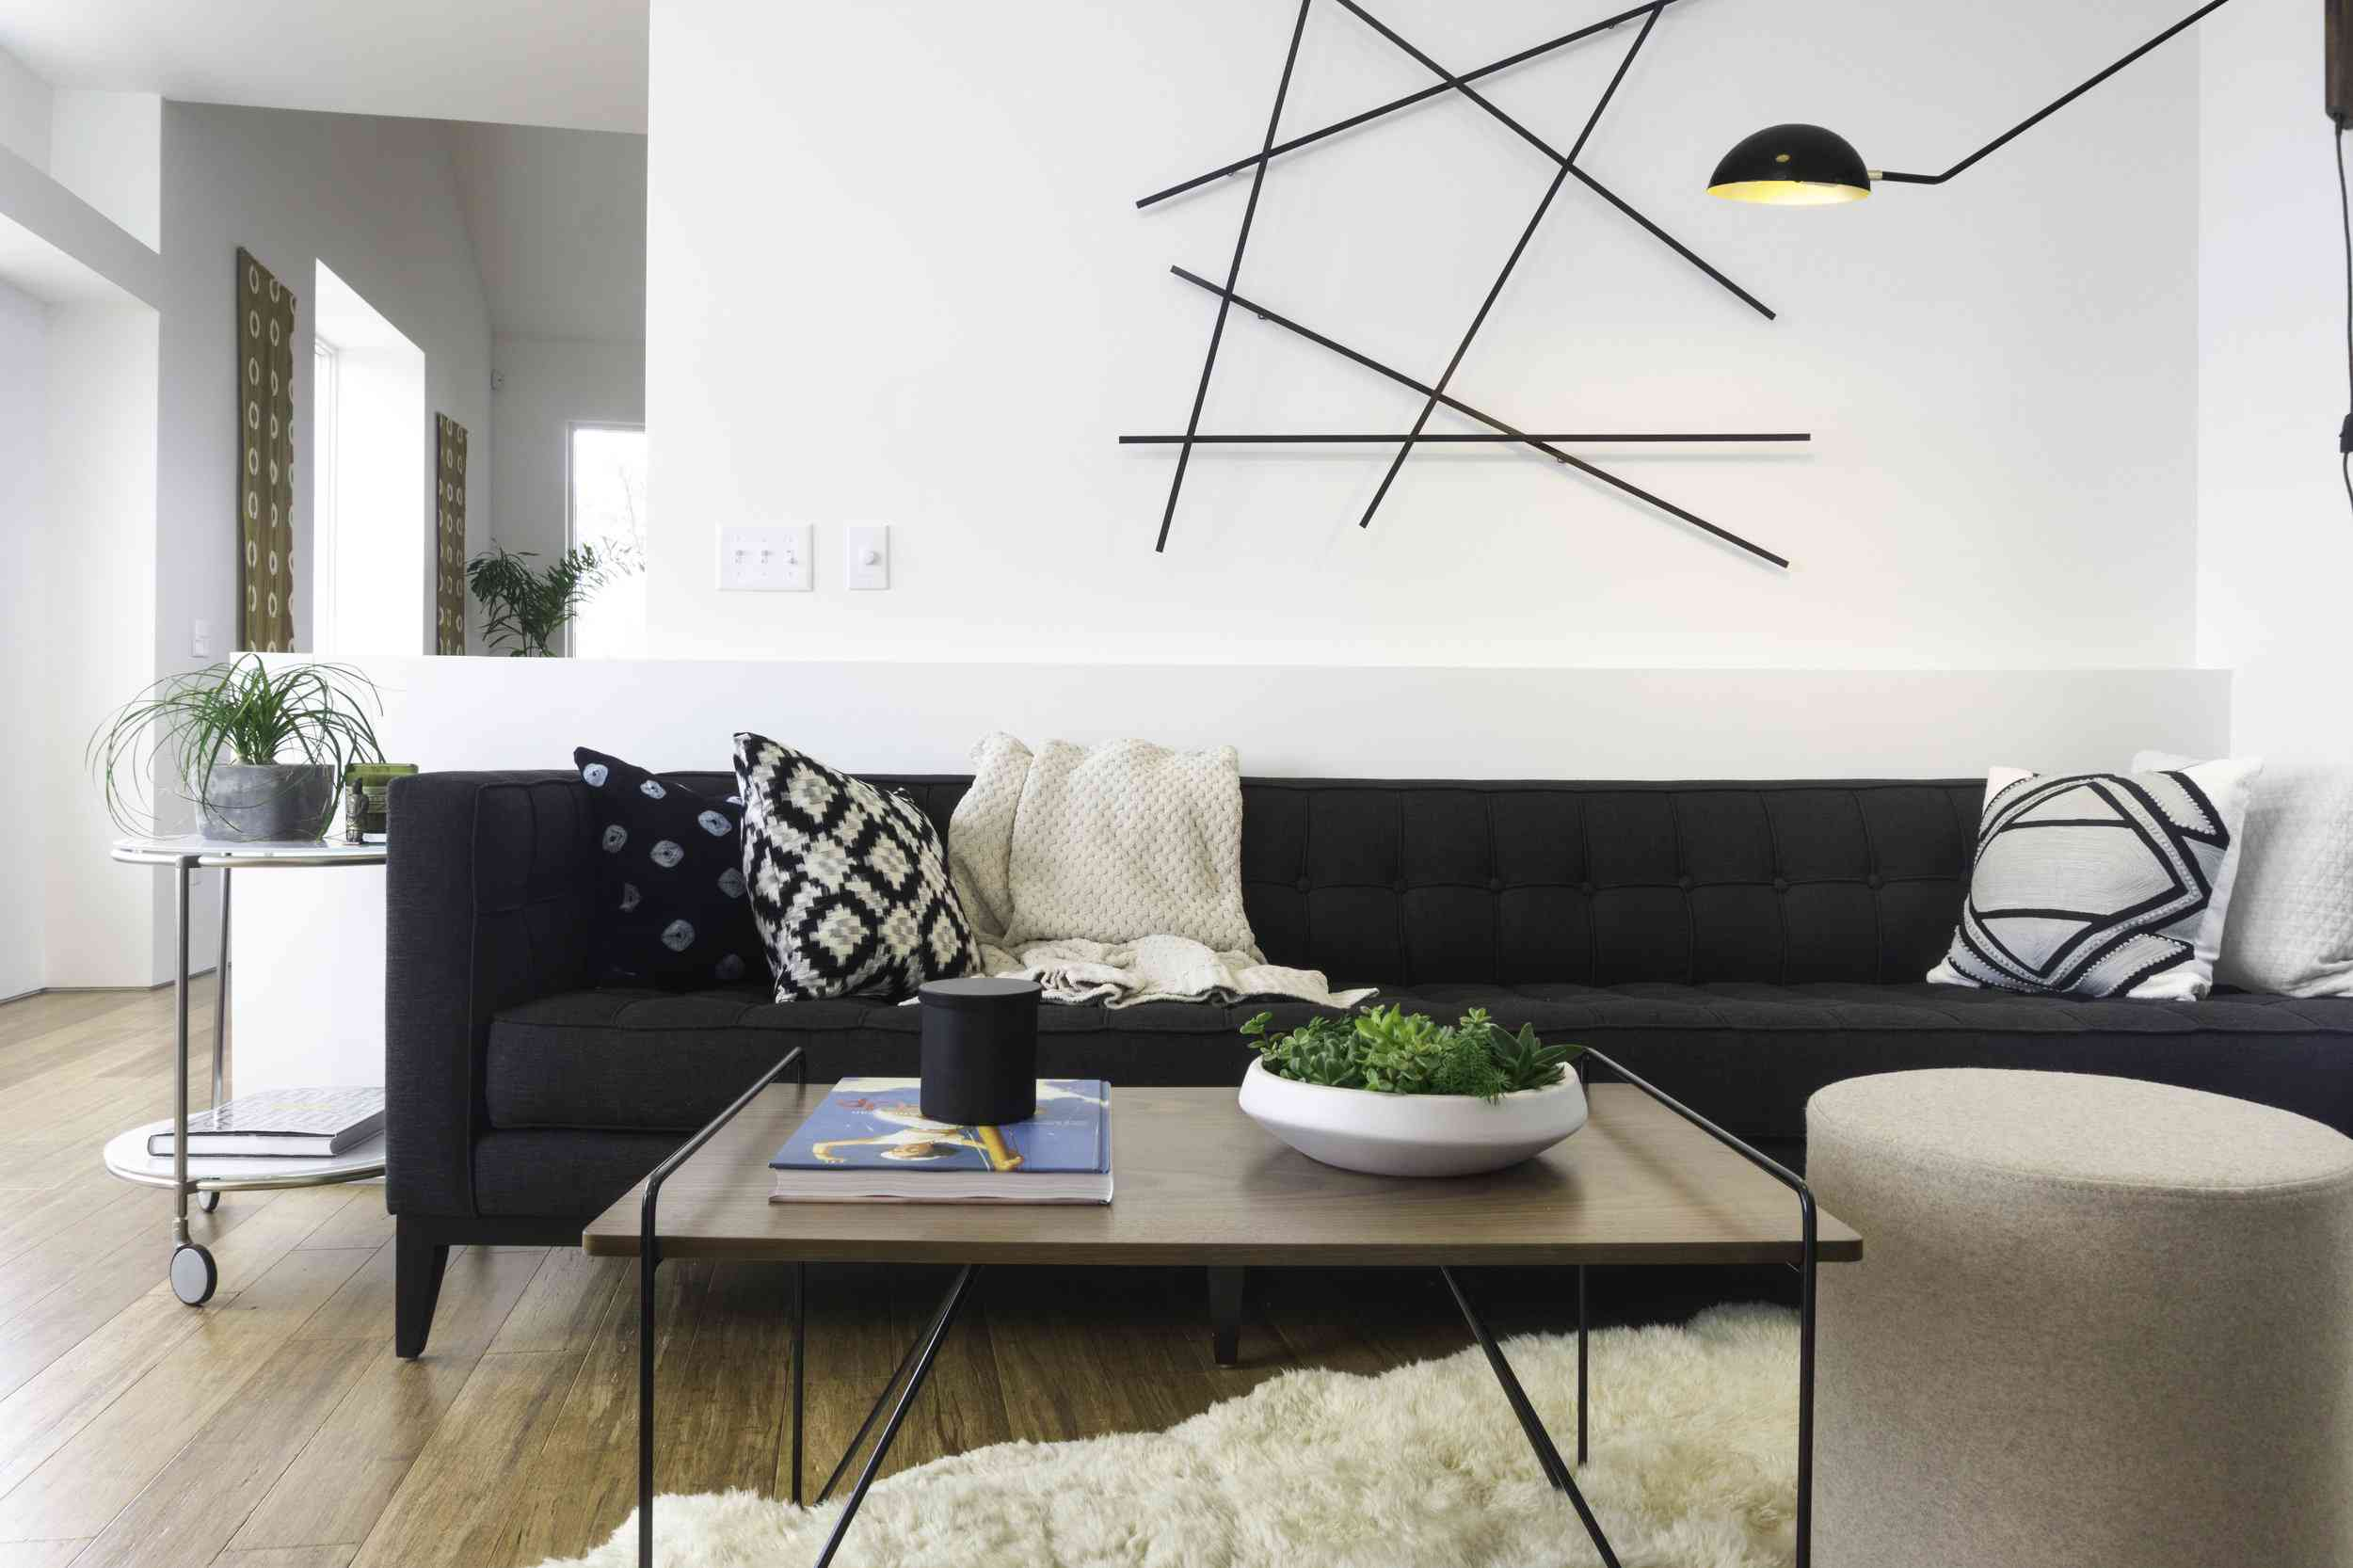 The Most Common Living Room Design Mistakes,High End Designer Bags